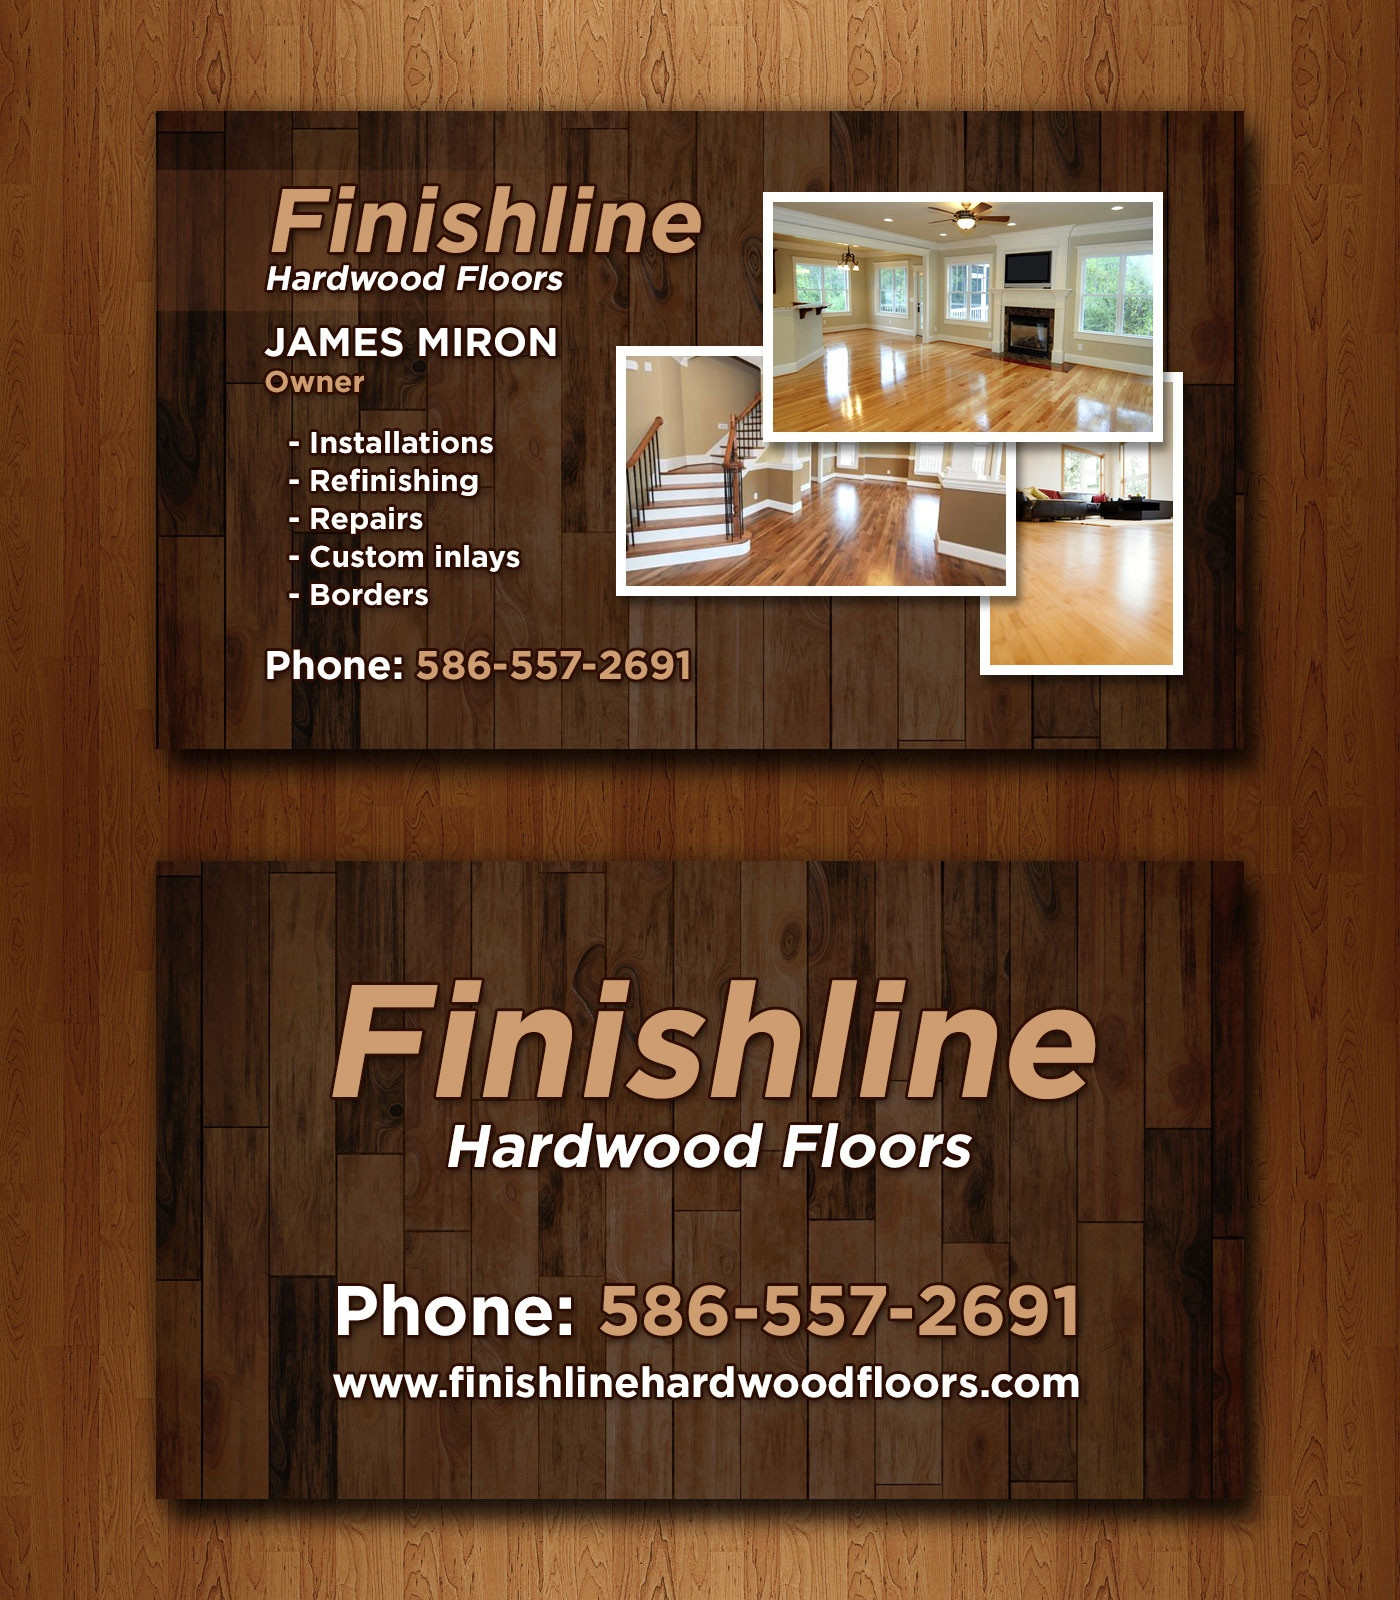 Hardwood Flooring Business Card Template Of 35 Fresh Business Cards Custom Example Of Coloring Page within Business Cards Custom Inspirational Flooring Business Cards 5 Custom Designs On Piles Of Blank Wood